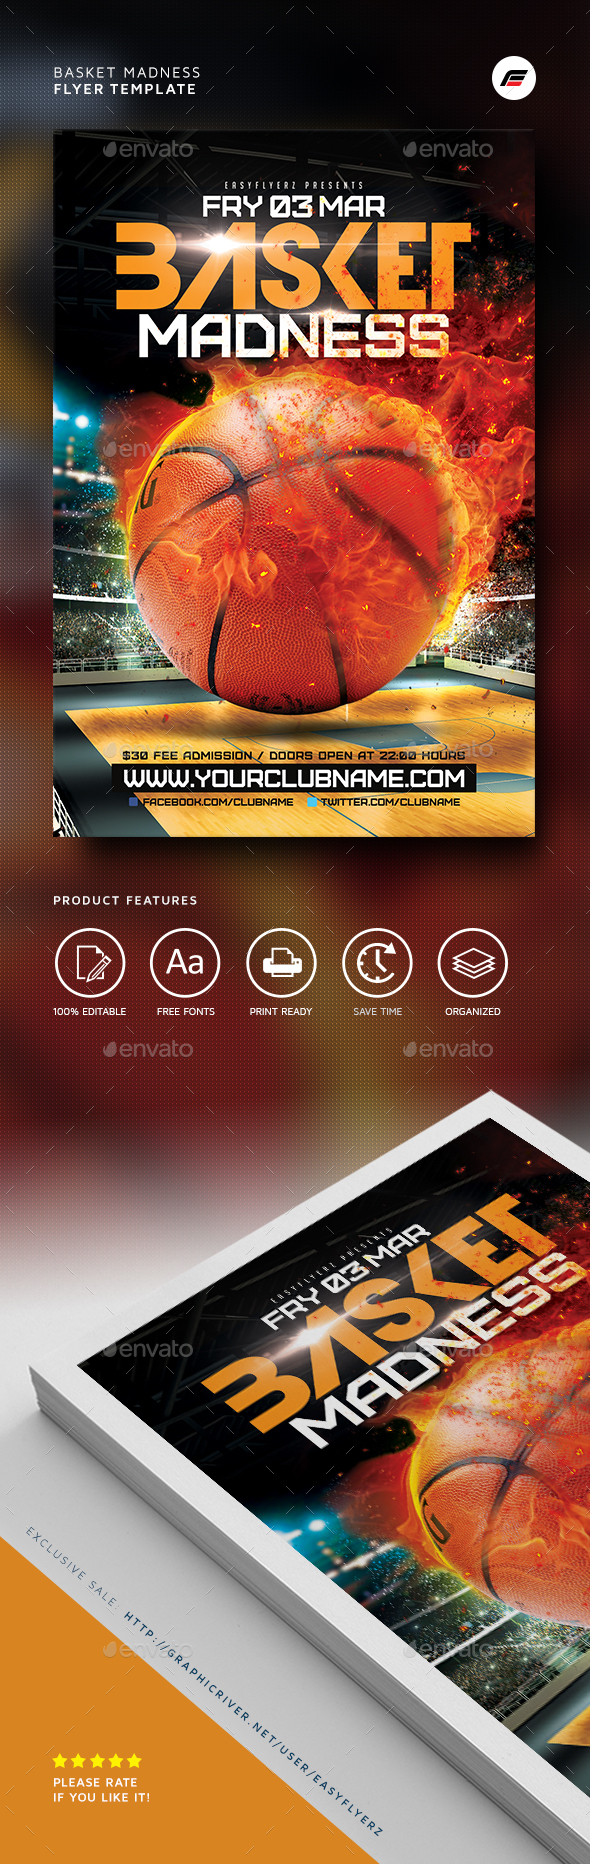 Basket Madness Flyer Template - Sports Events